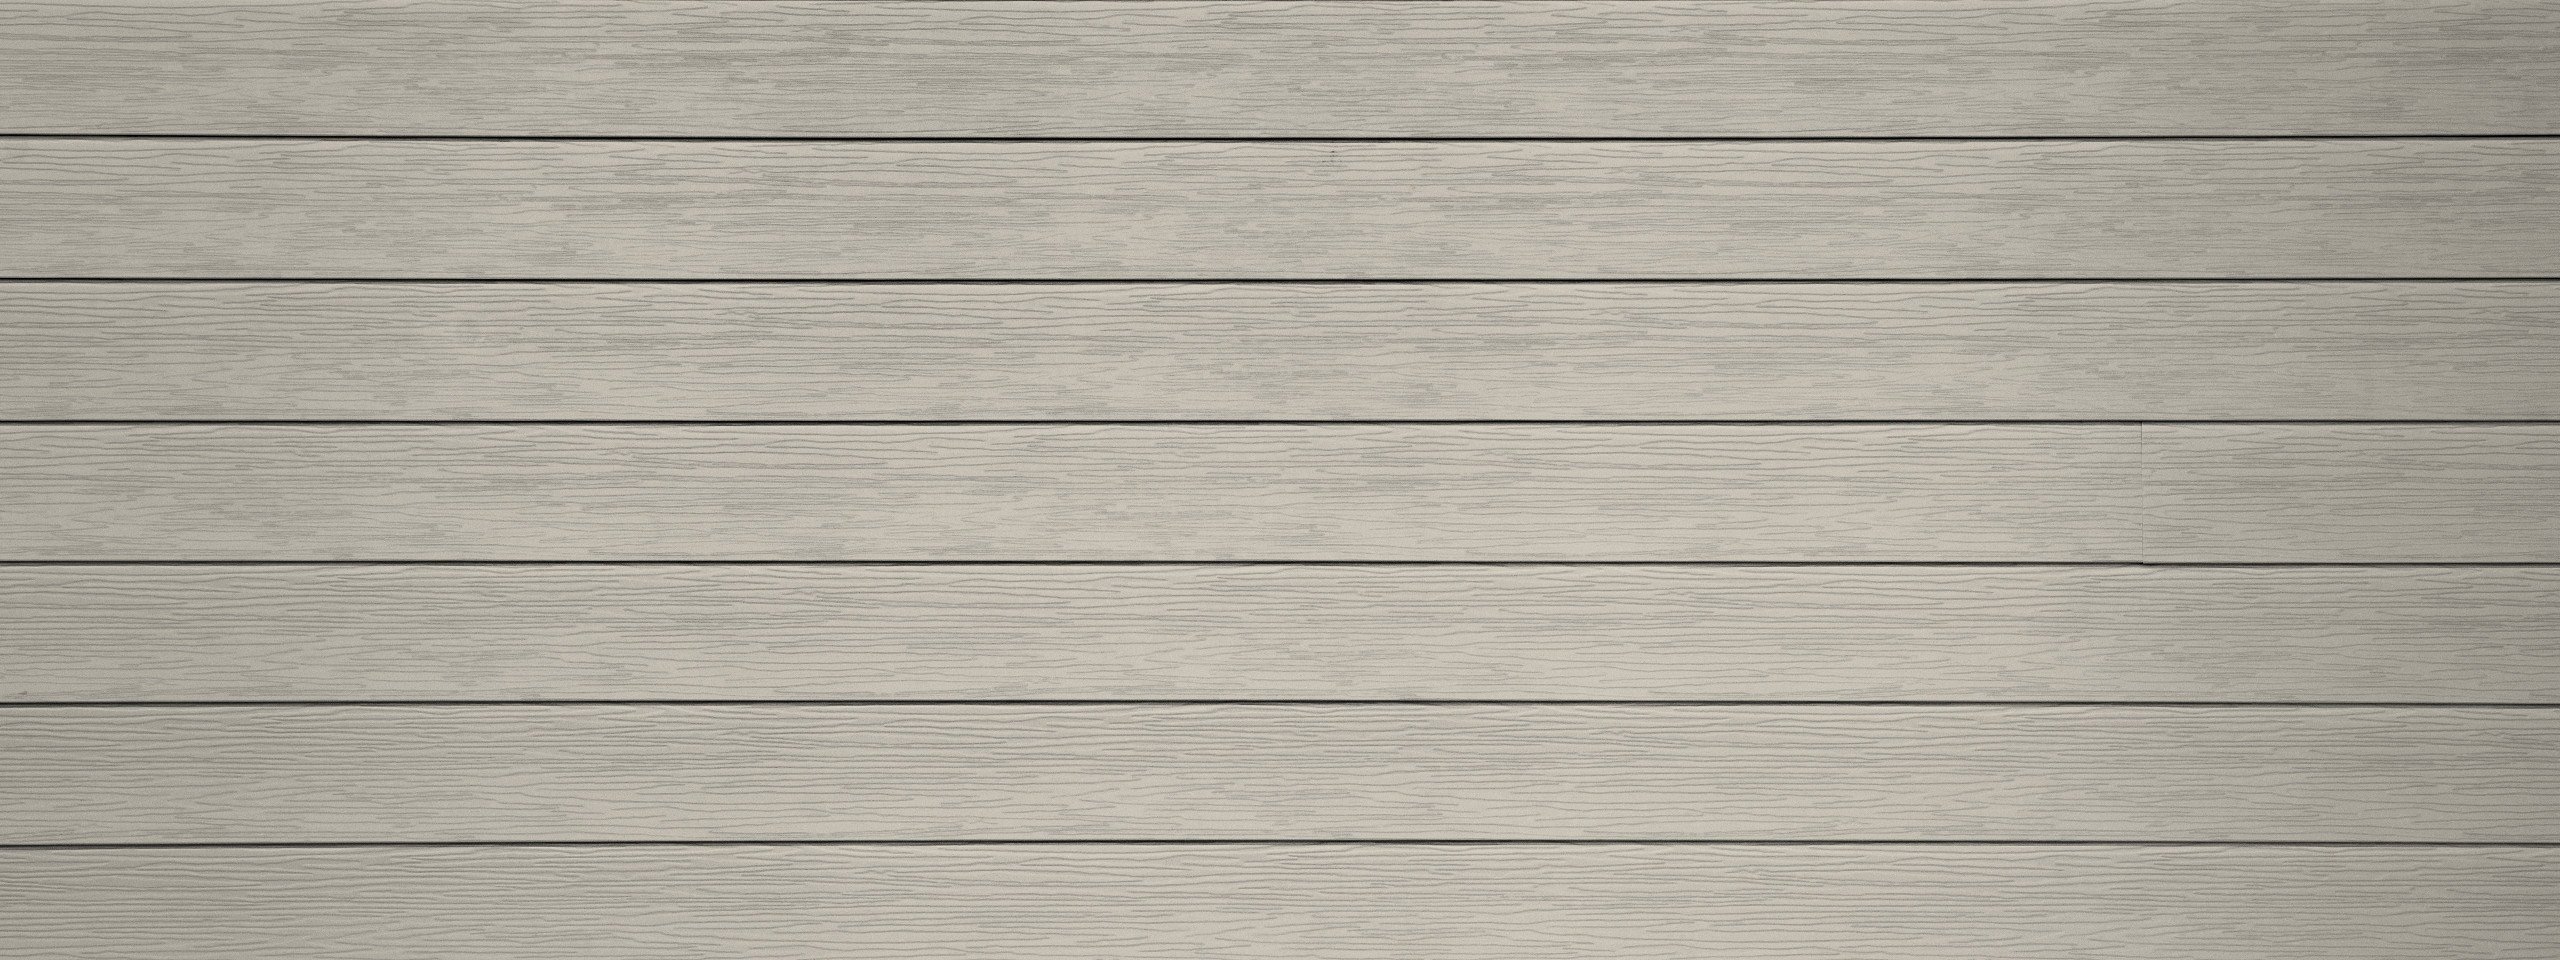 Entex traditional lap desert tone horizontal steel siding